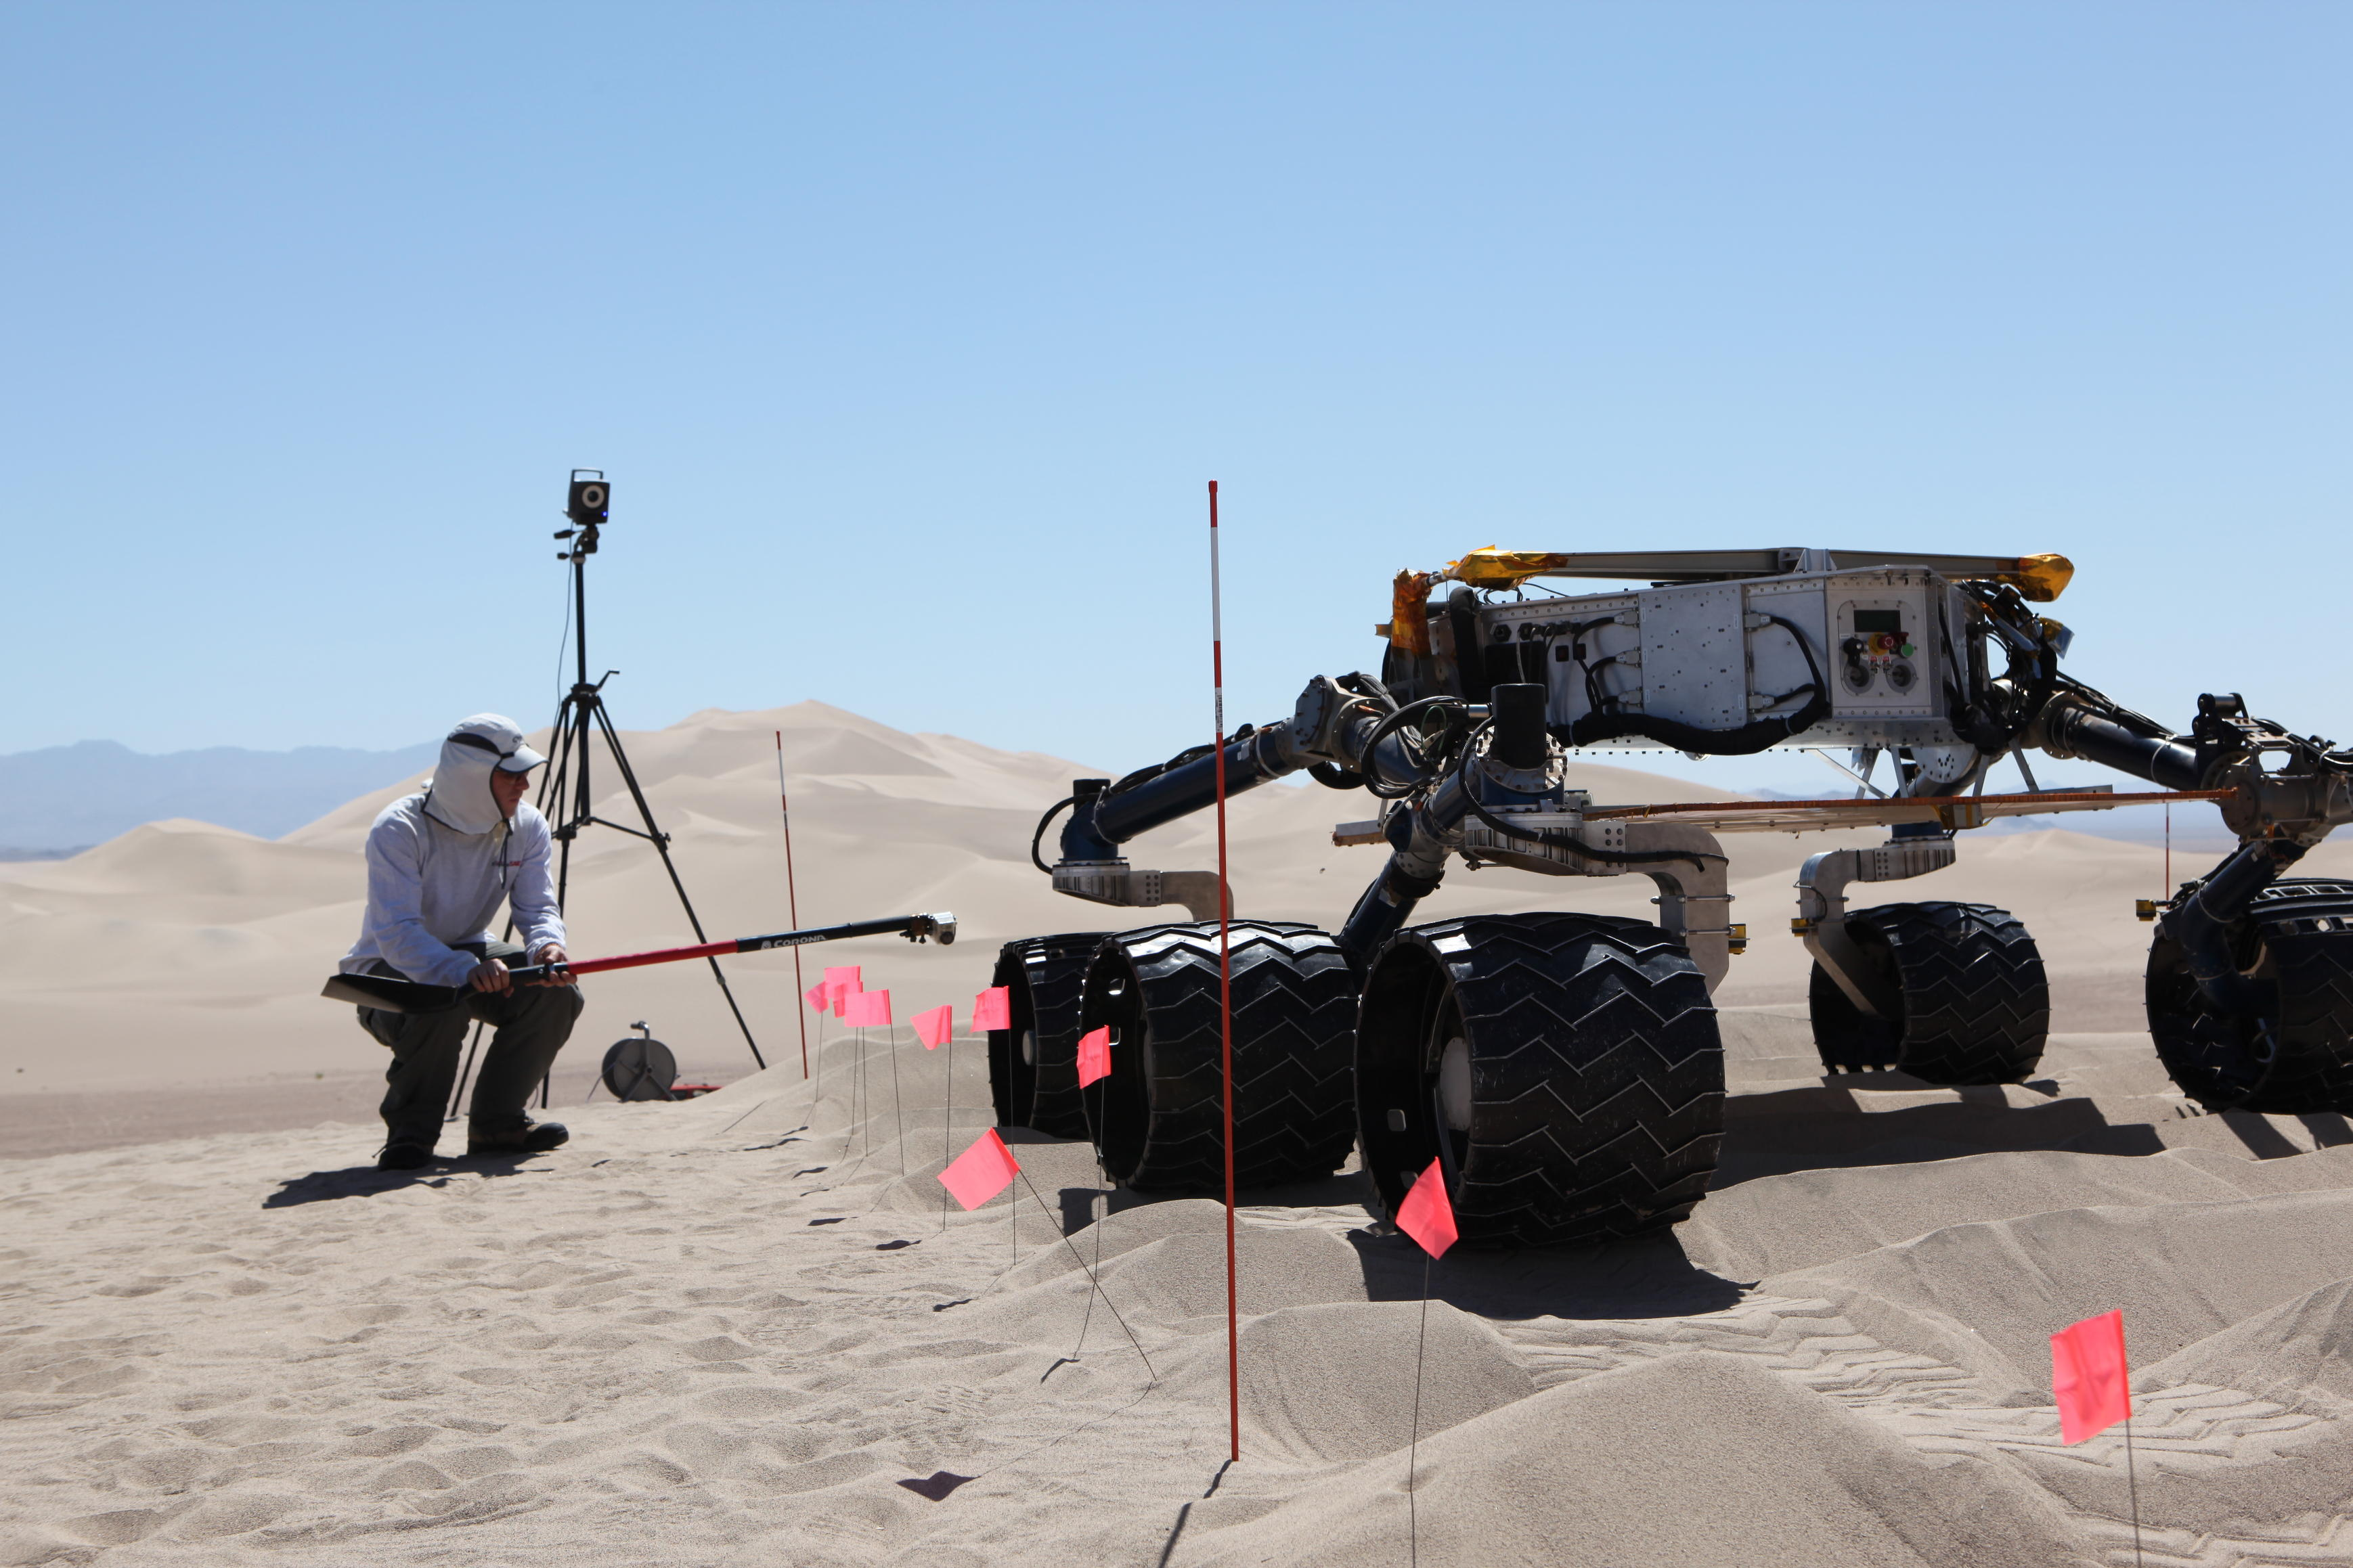 sand dune, mars rover, wheel, Dumont, Scarecrow, test - This image shows the scarecrow test rover going over a dunes obstacle course, while an engineer hunches down to see the wheels as it drives.